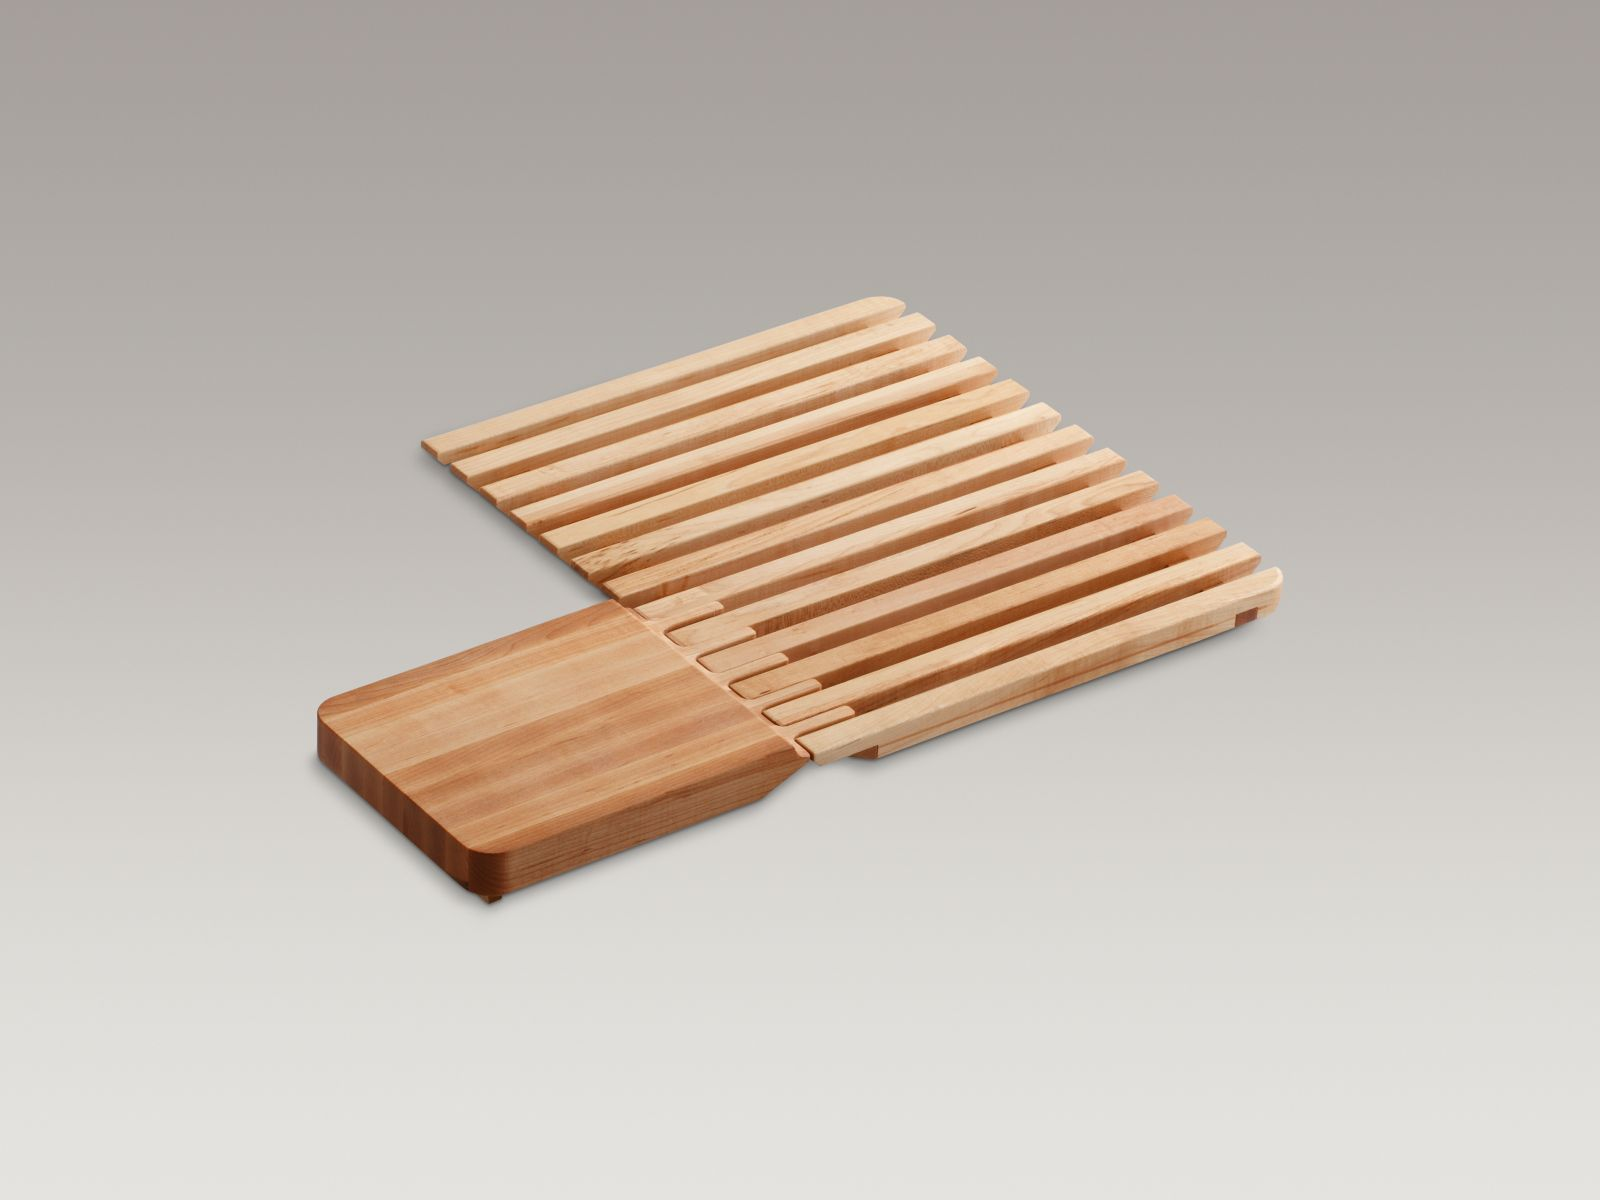 Kohler K-5907-NA Epicurean Hardwood Cutting Board and Drain Board